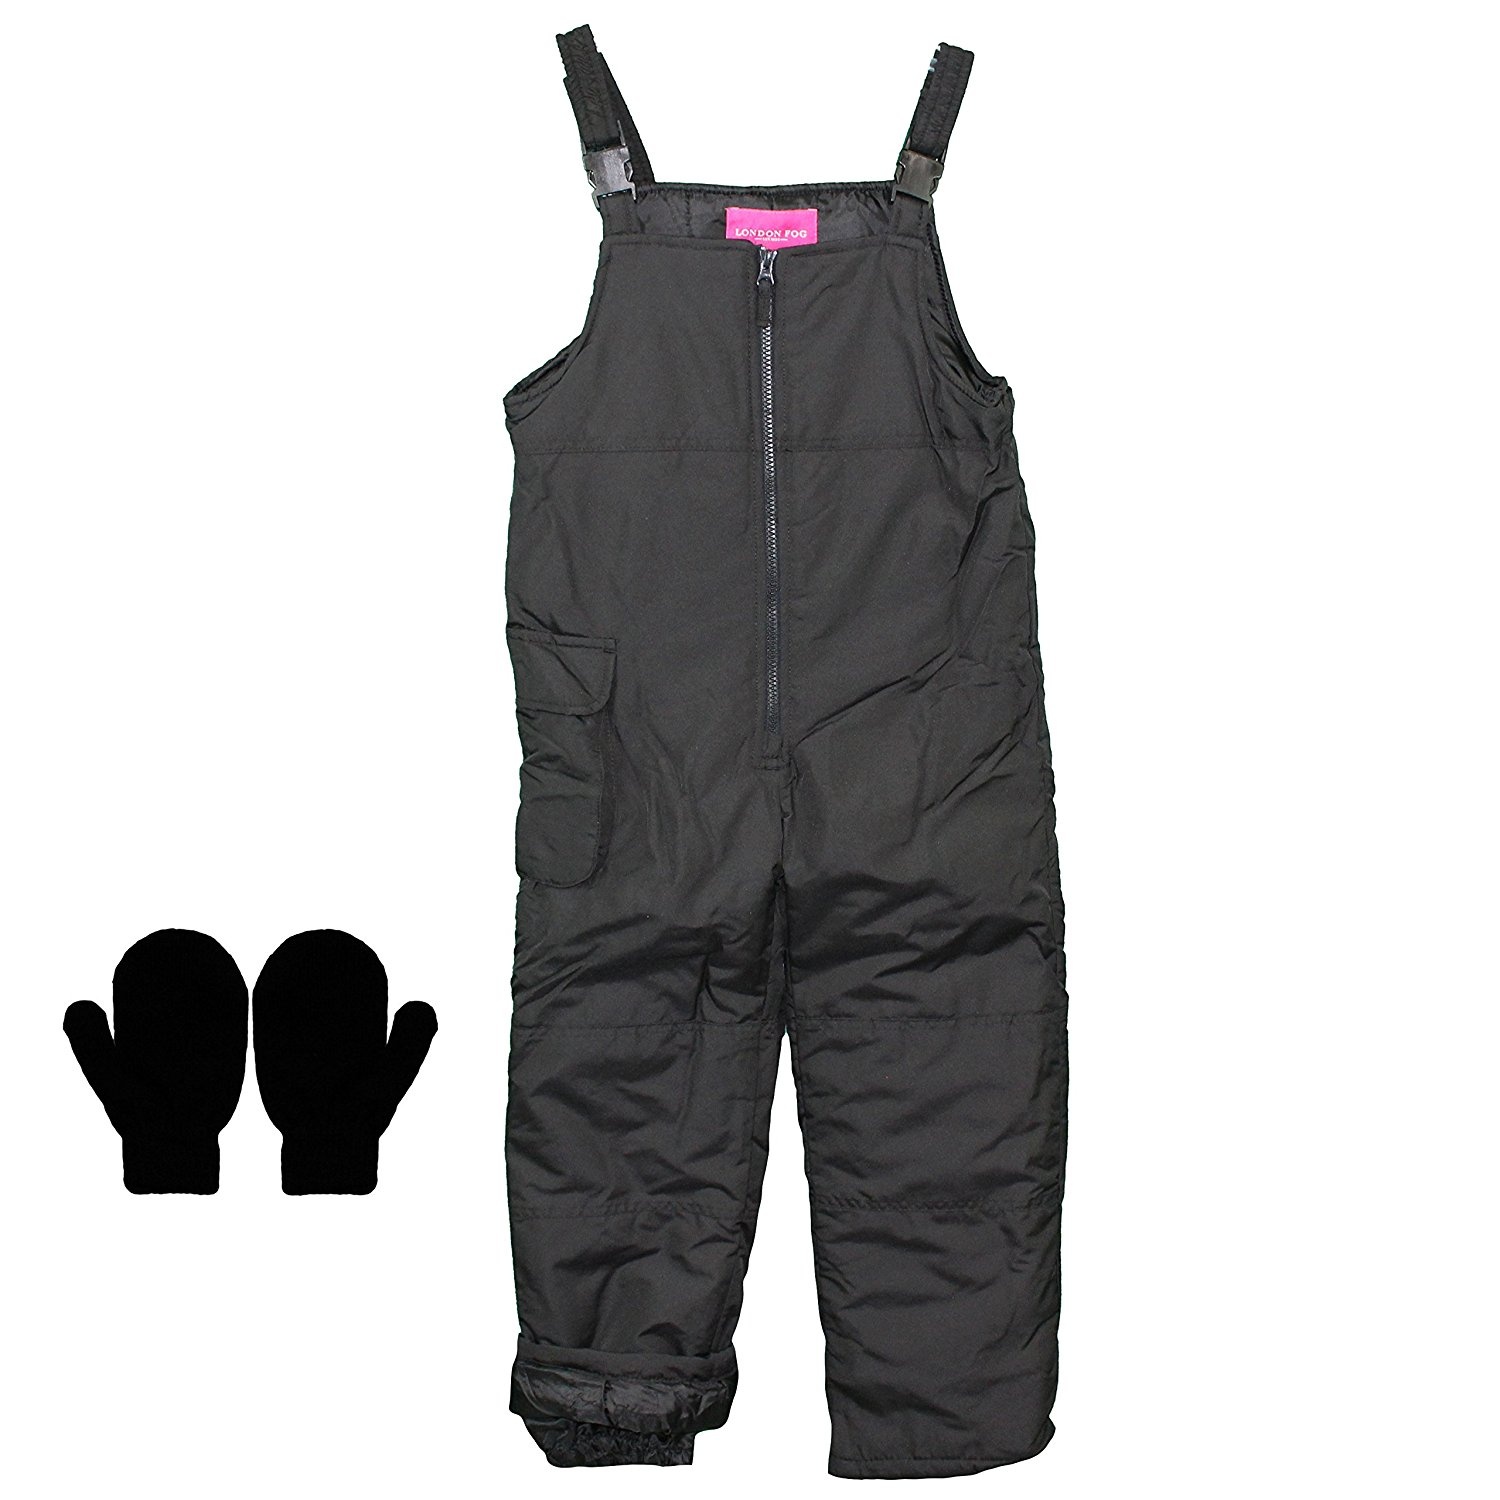 2d4a7d121b49 Cheap Girls Bib Ski Pants